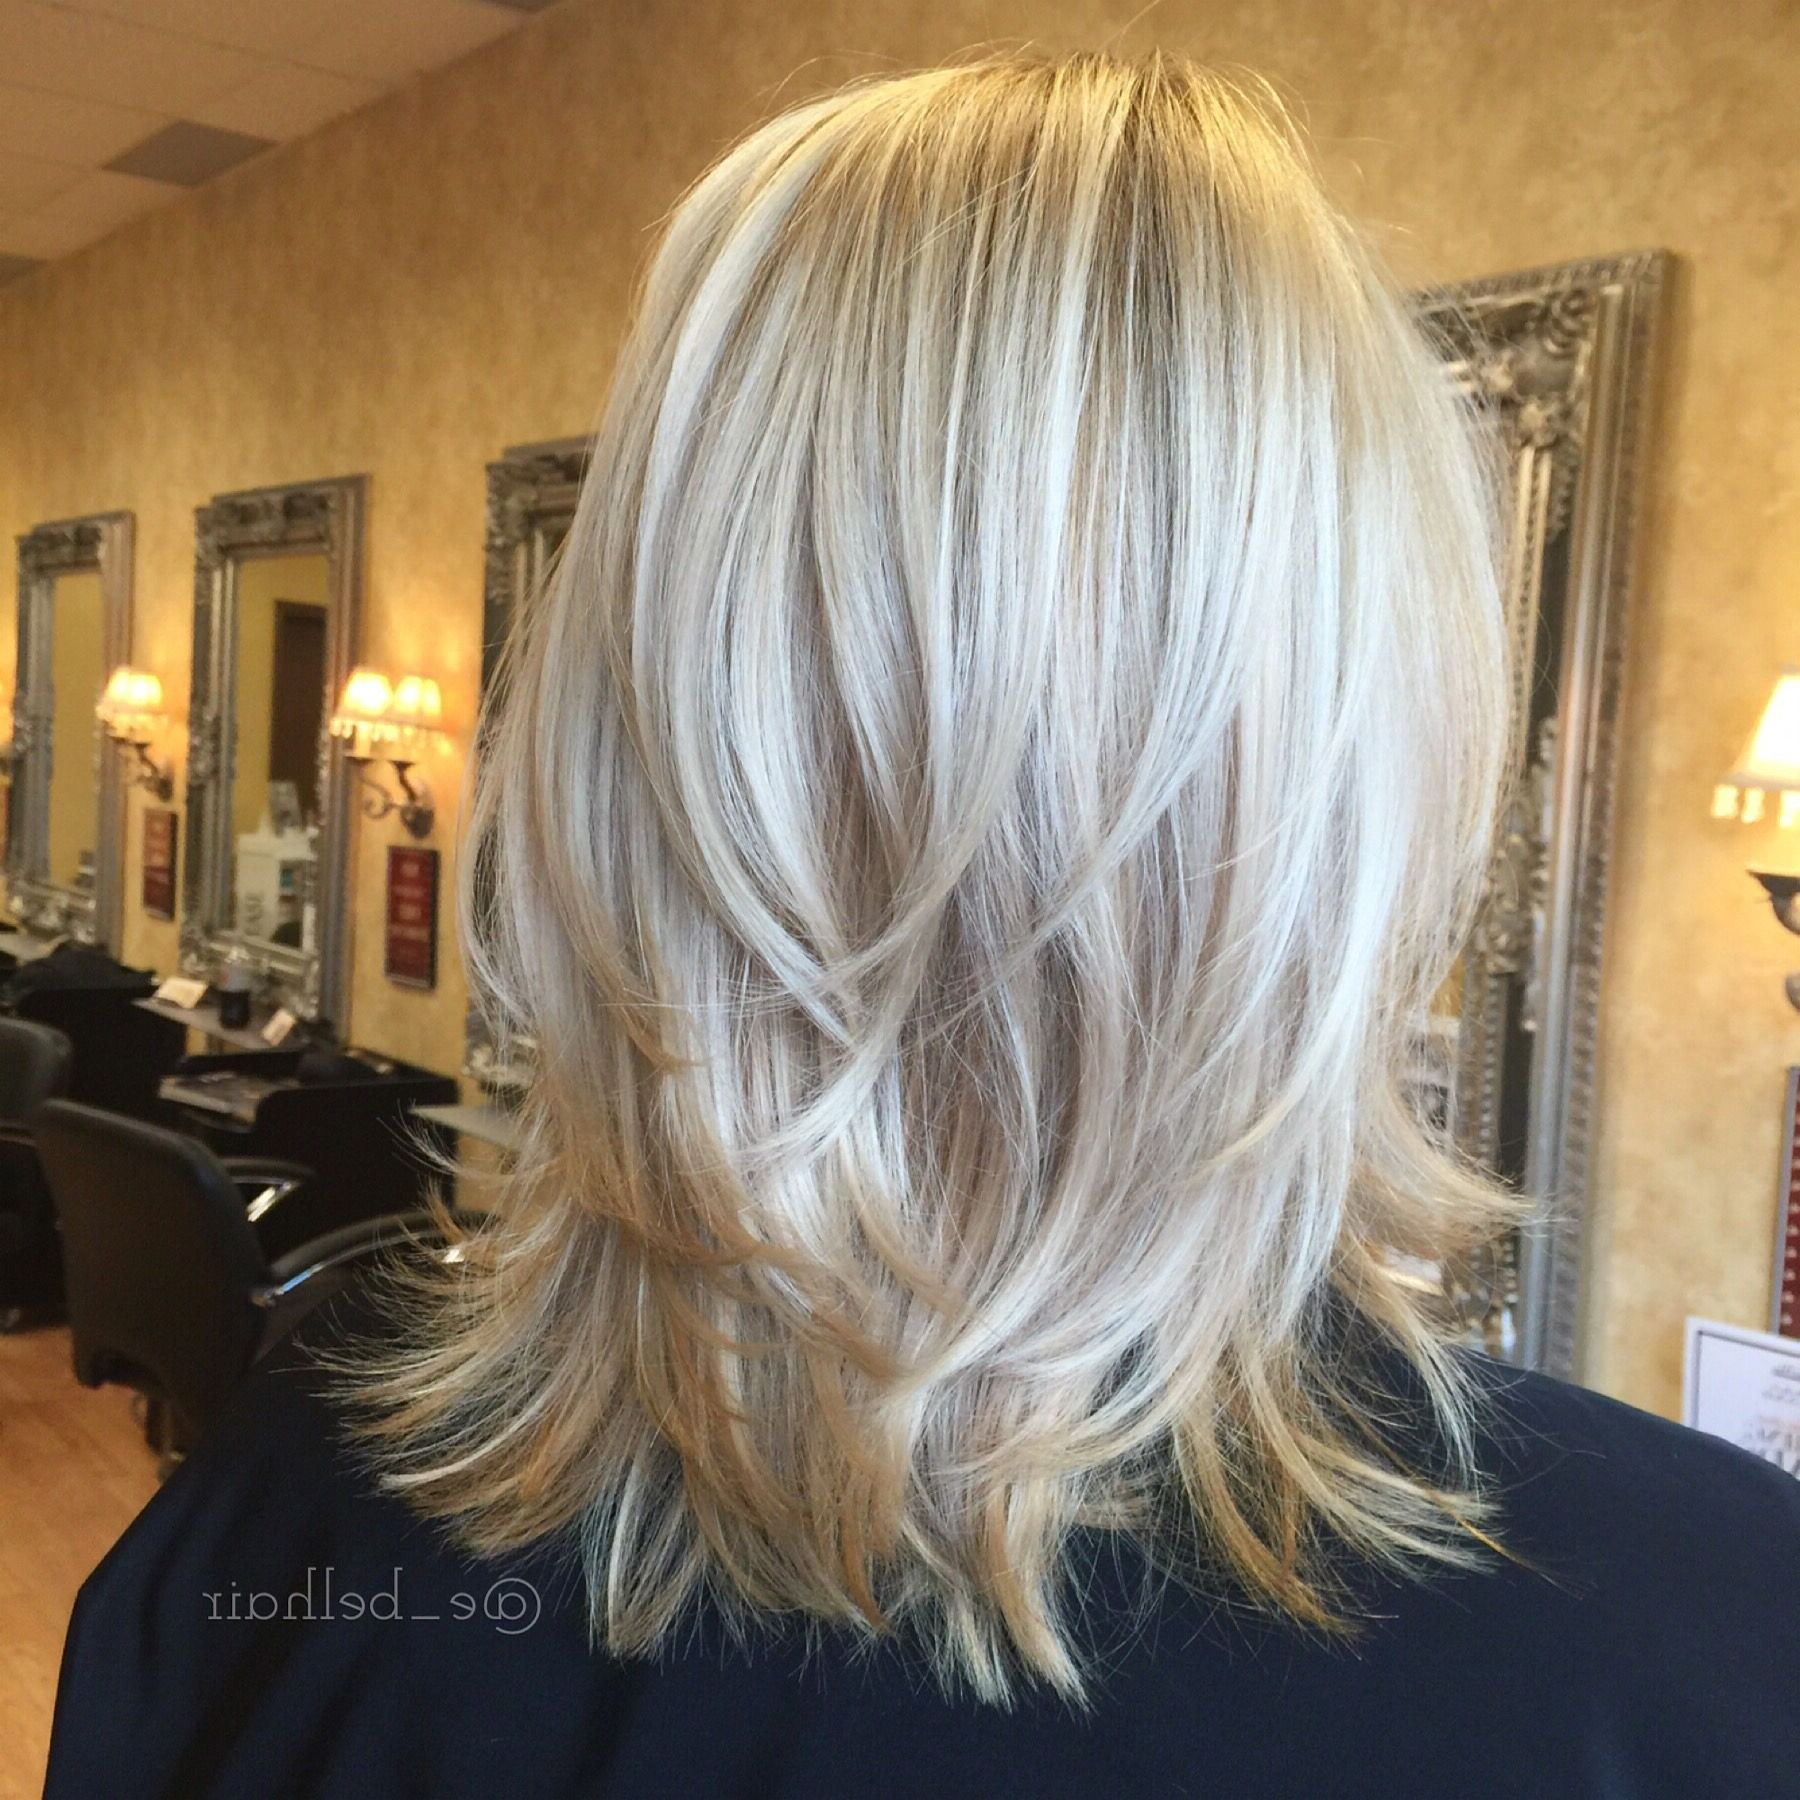 Well Known Choppy Cut Blonde Hairstyles With Bright Frame Within Shoulder Length Cut With Tousled Layers And Fresh Blonde Color (View 11 of 20)